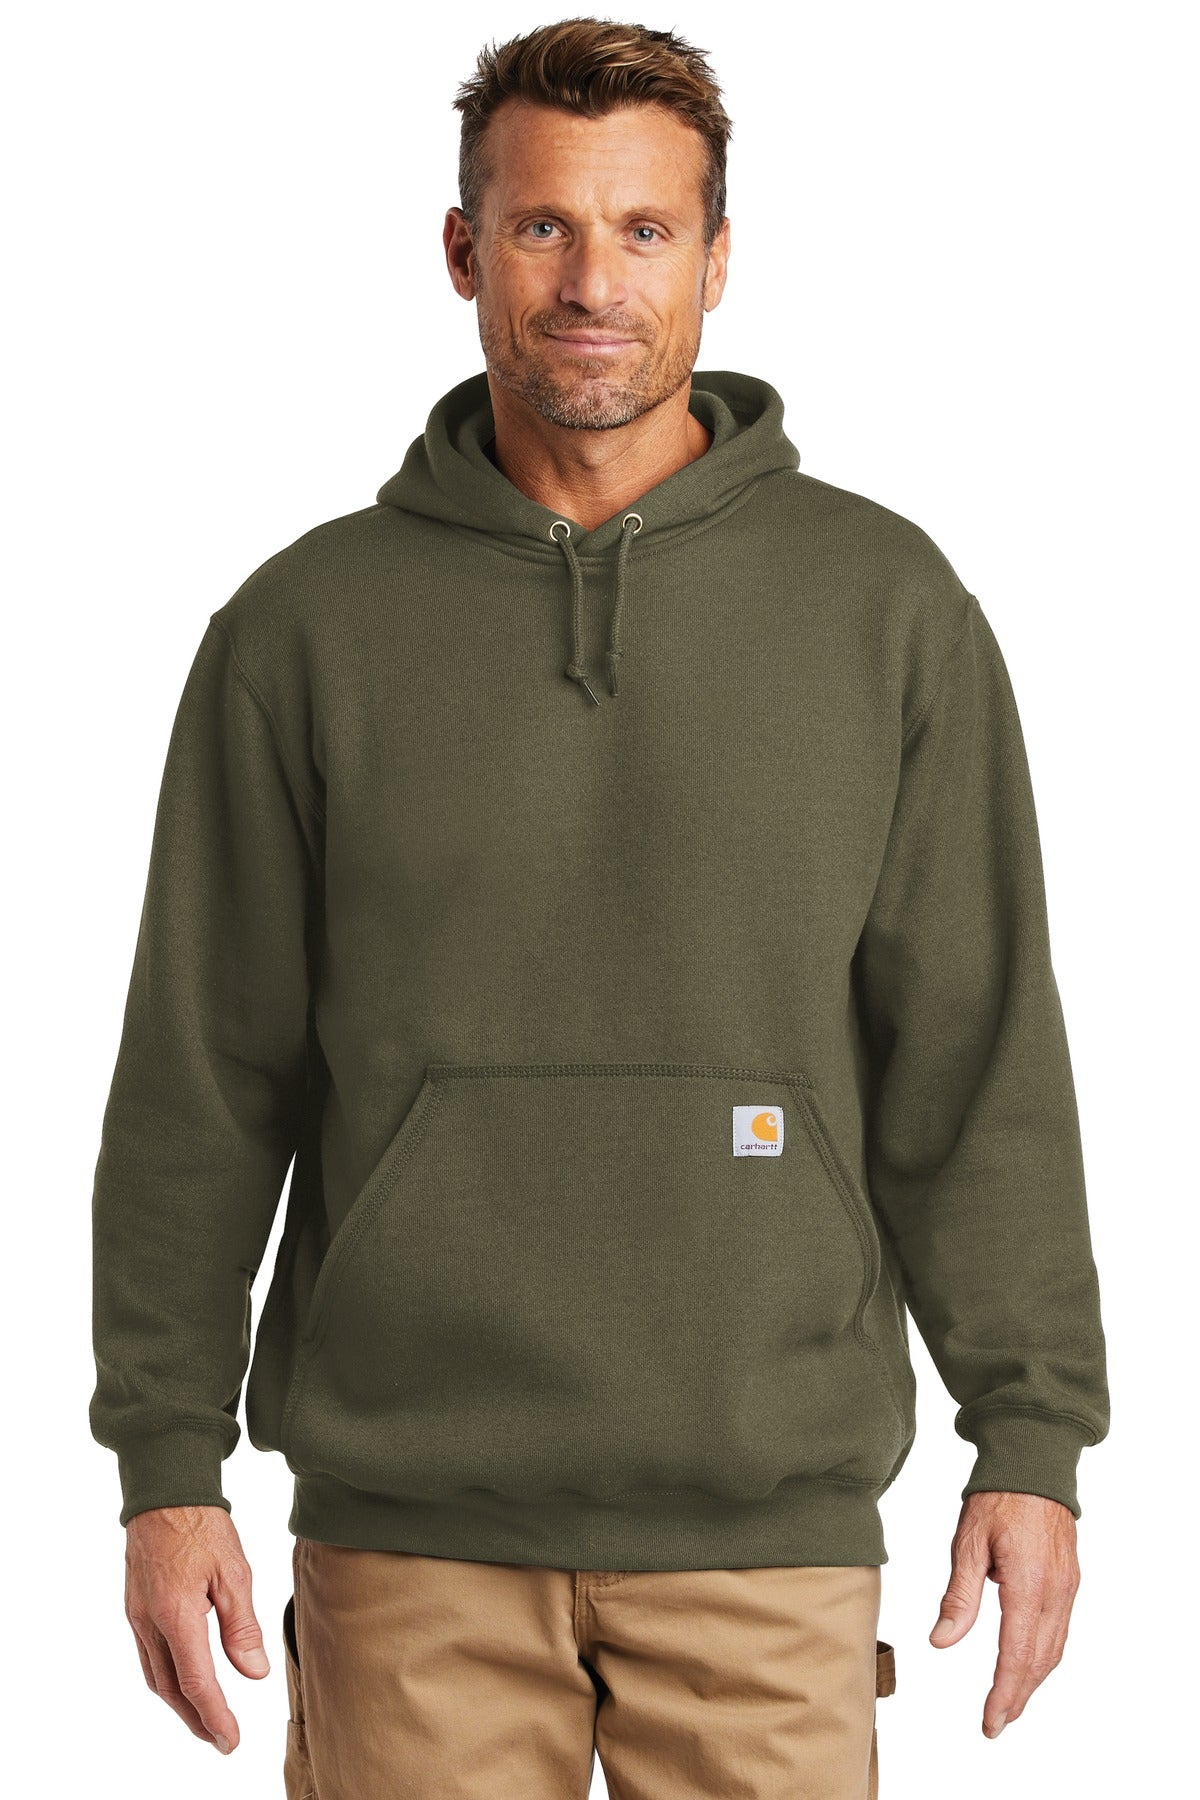 Carhartt ® Midweight Hooded Sweatshirt. CTK121 - Aspire Zone